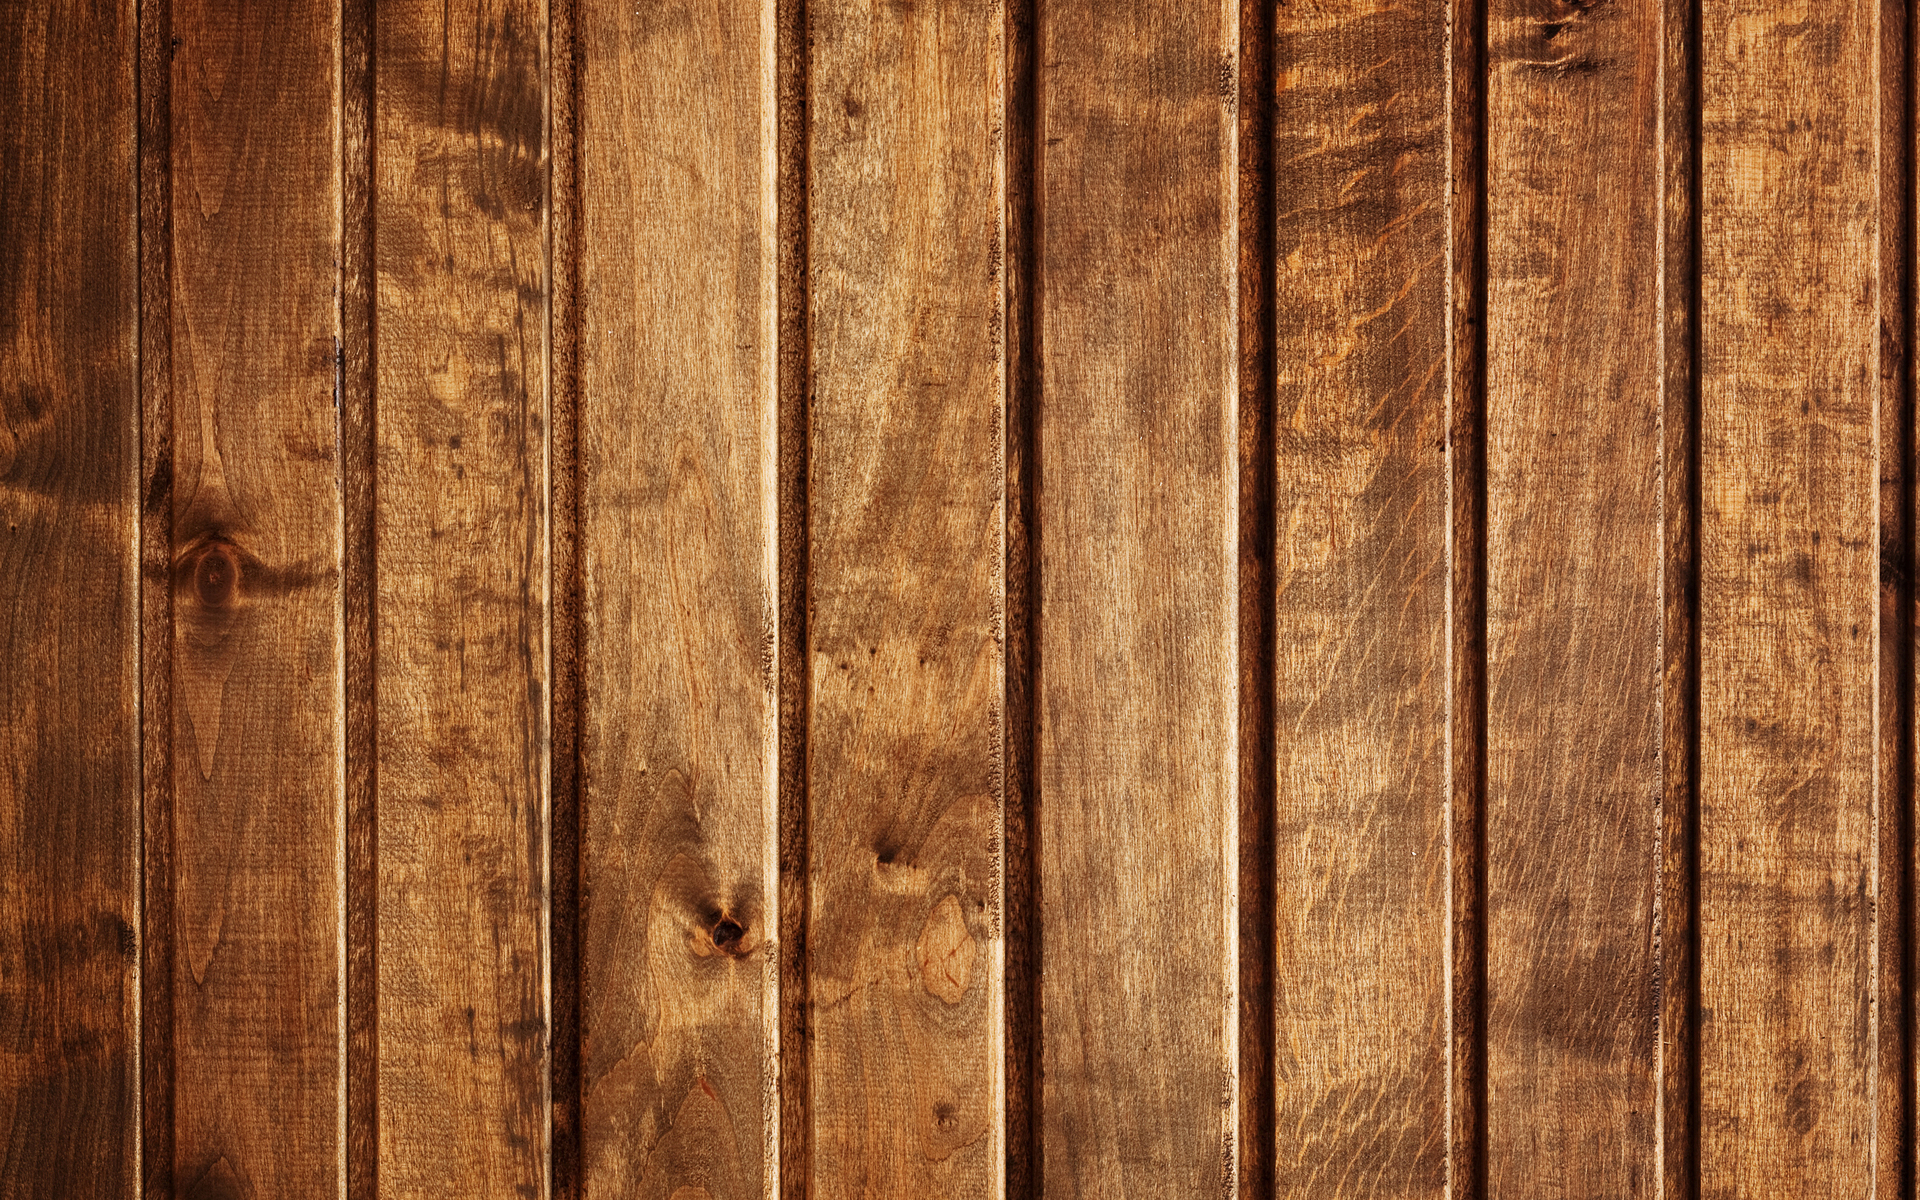 wall textures wood texture